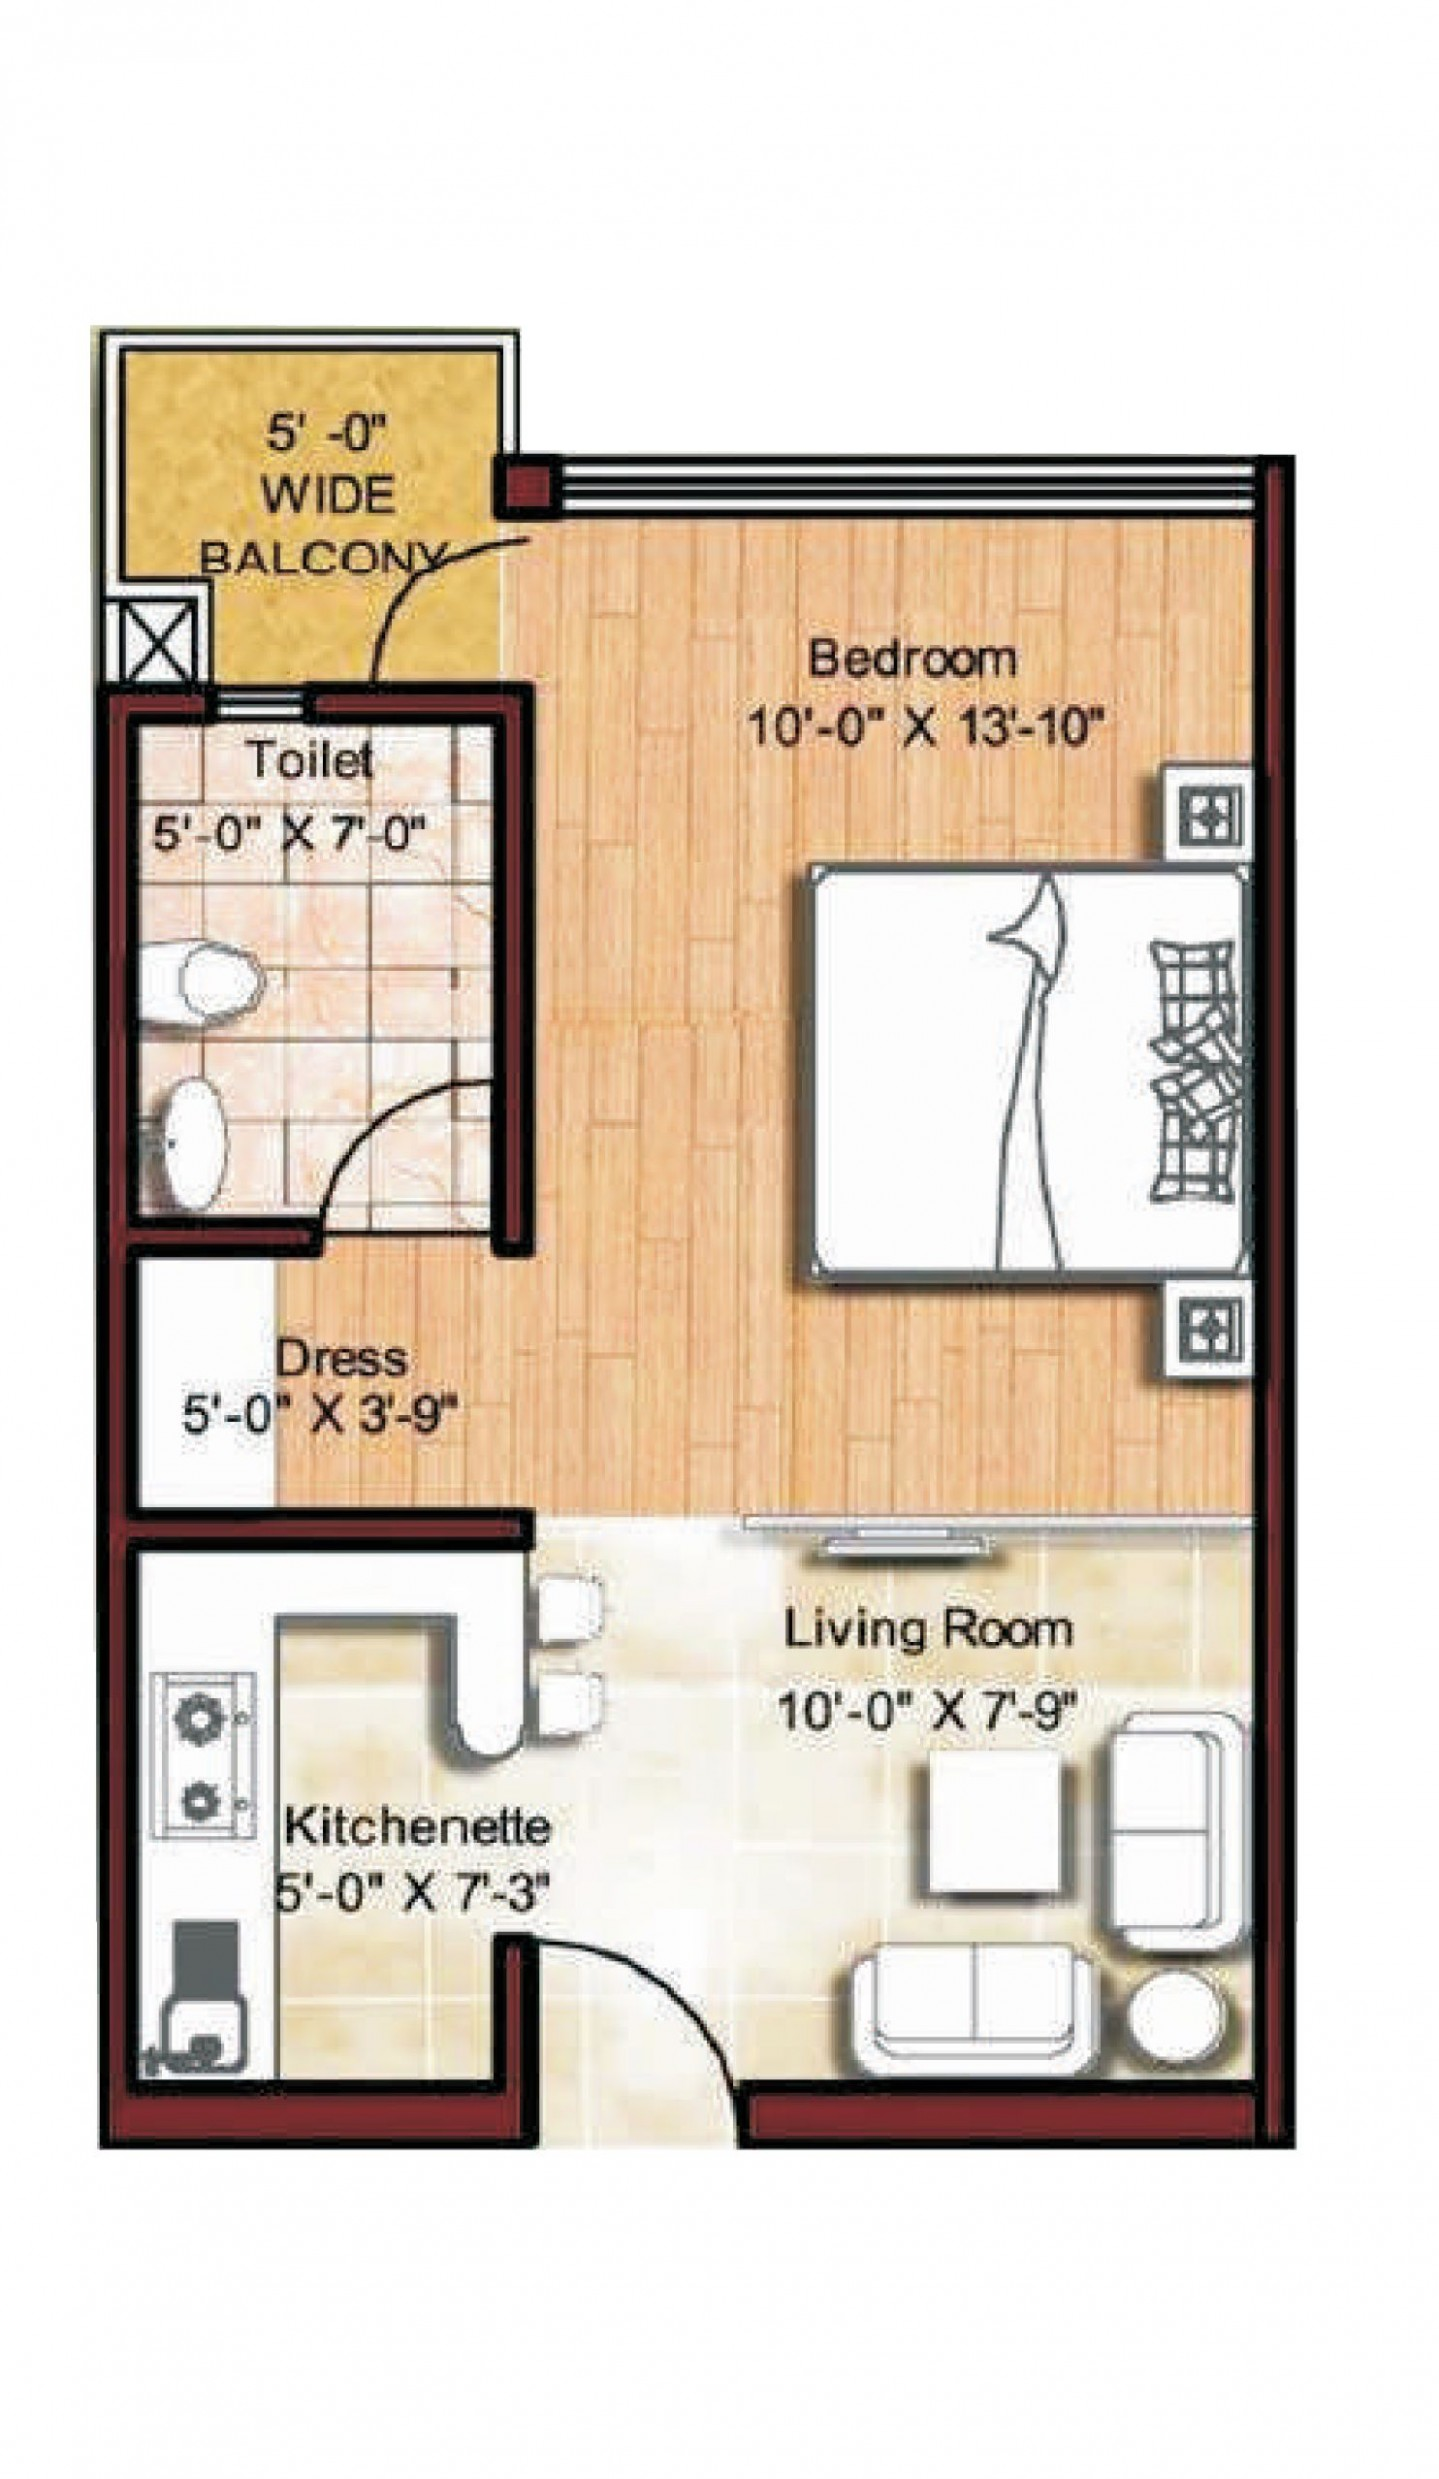 micro apartments floor plans  Floor Plan  Studio apartment floor  - Apartment Design And Floor Plan